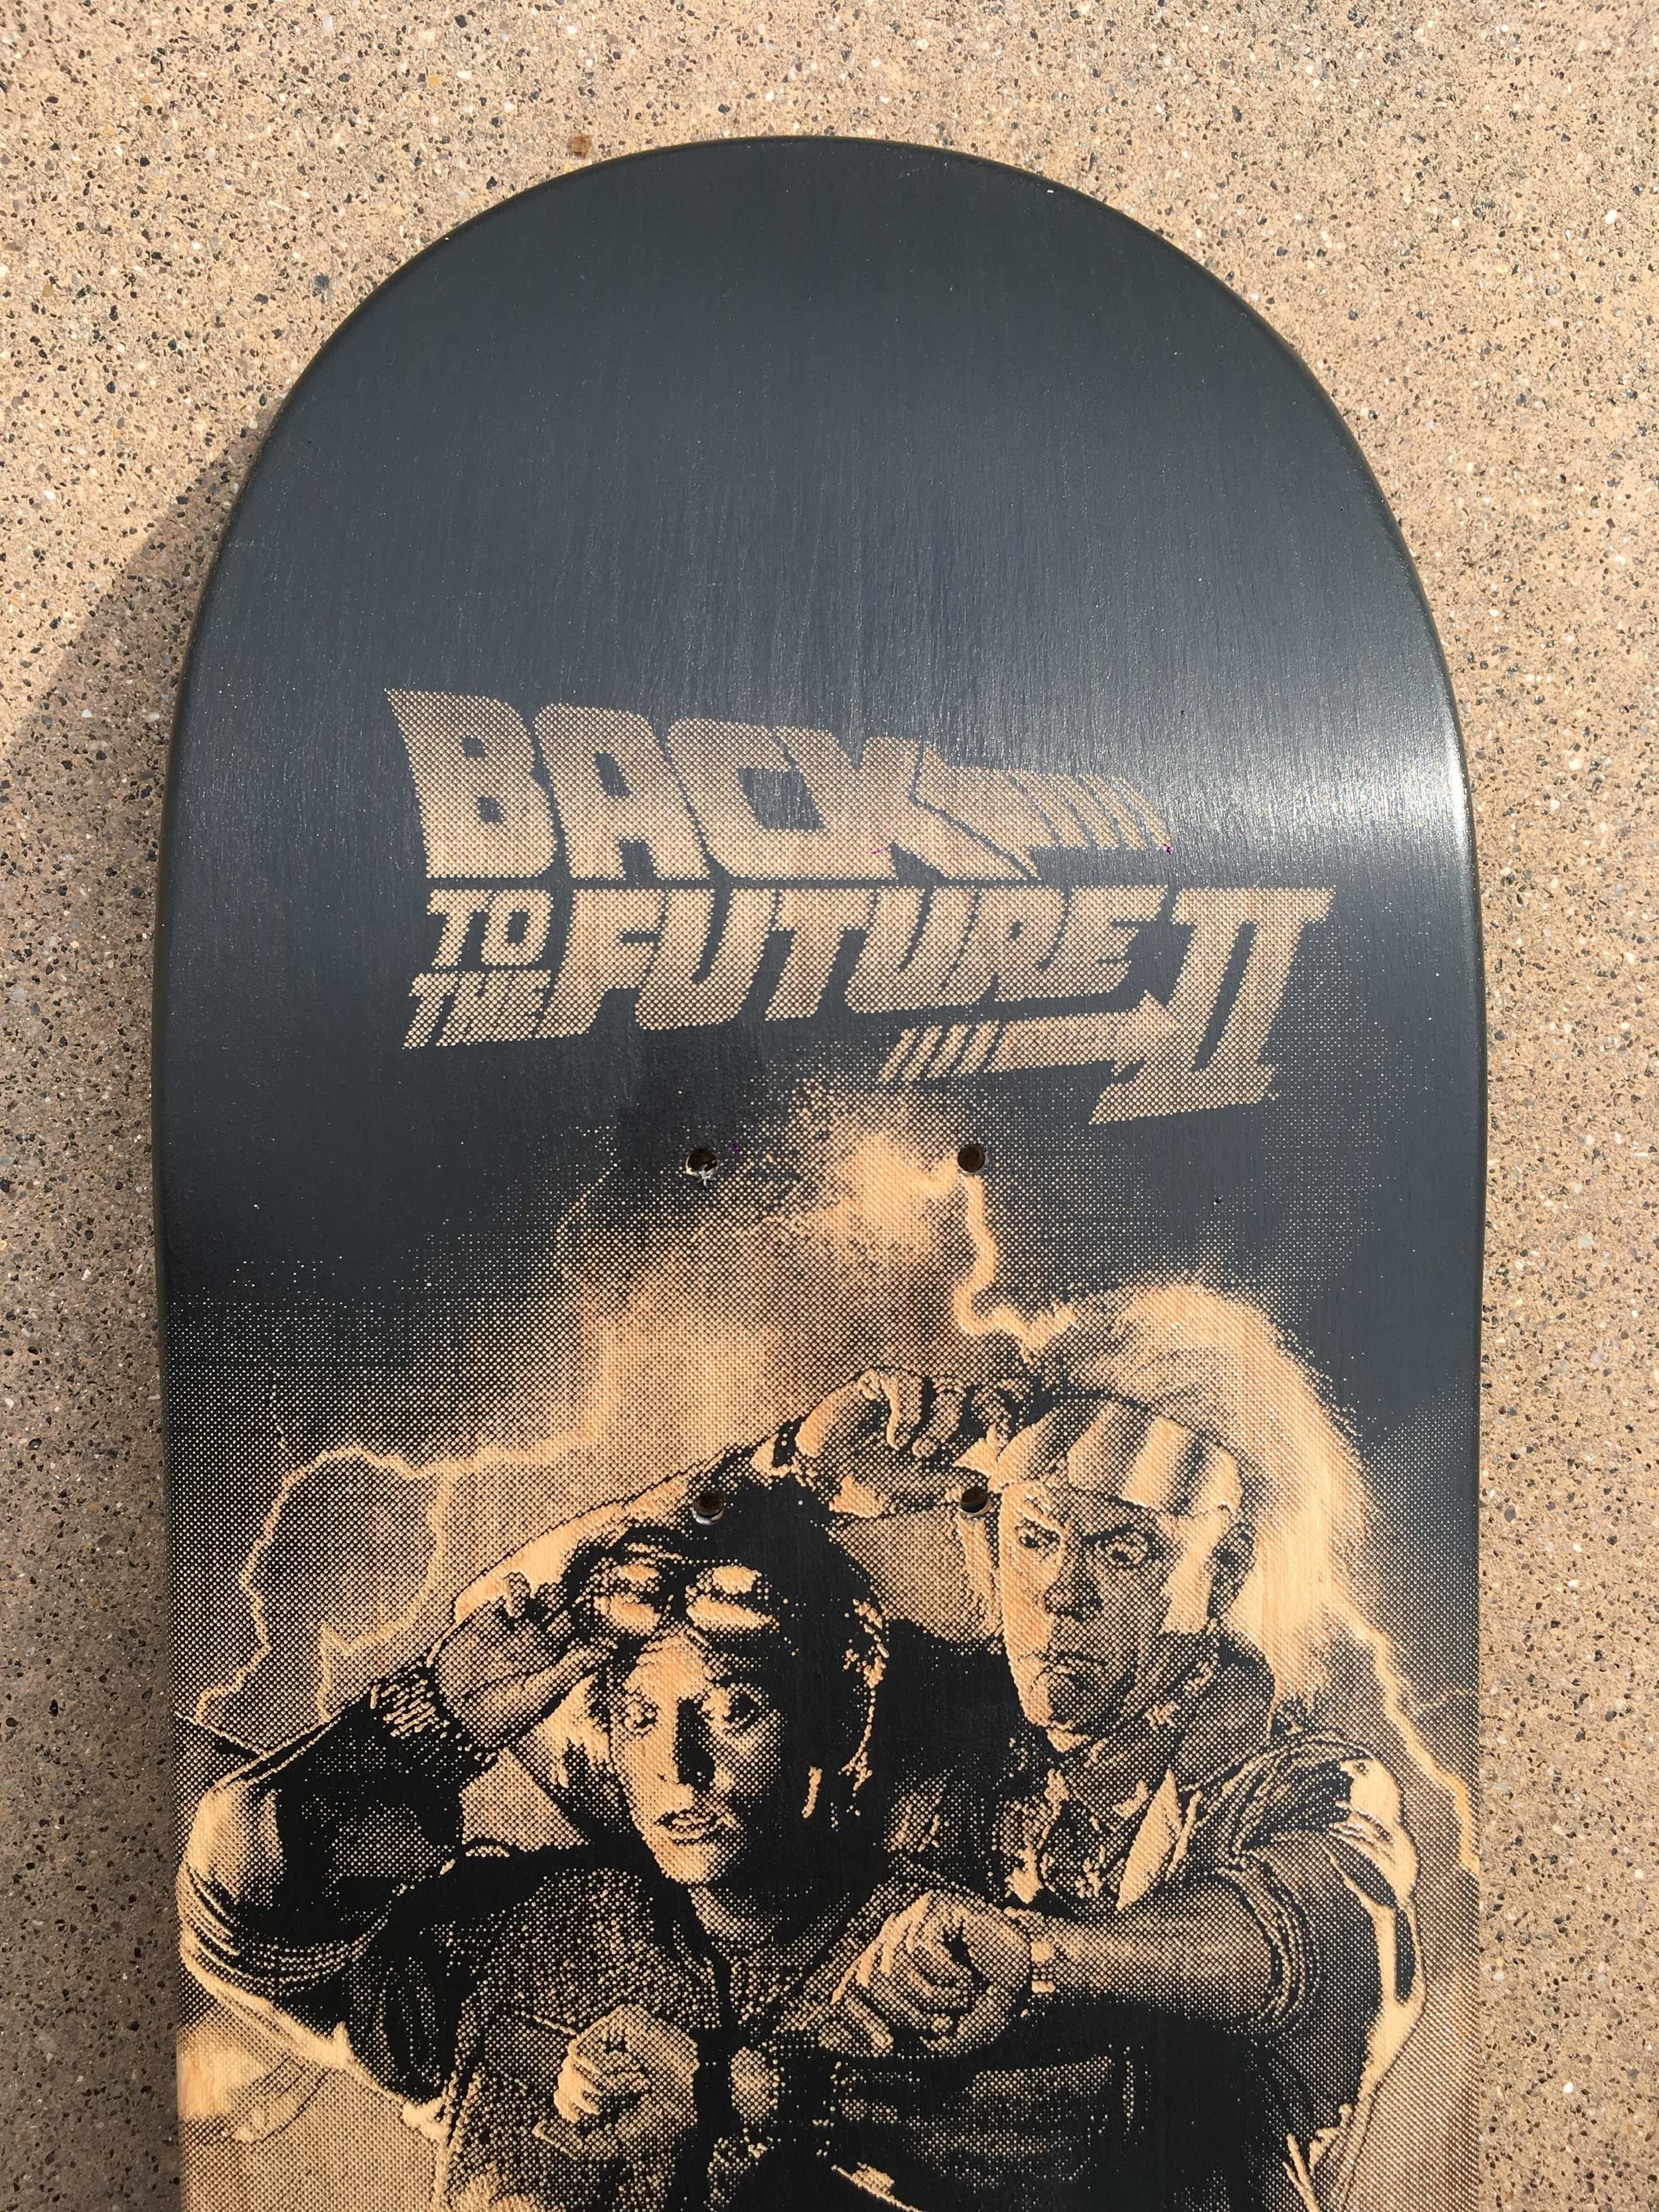 For a Back to the Future fan